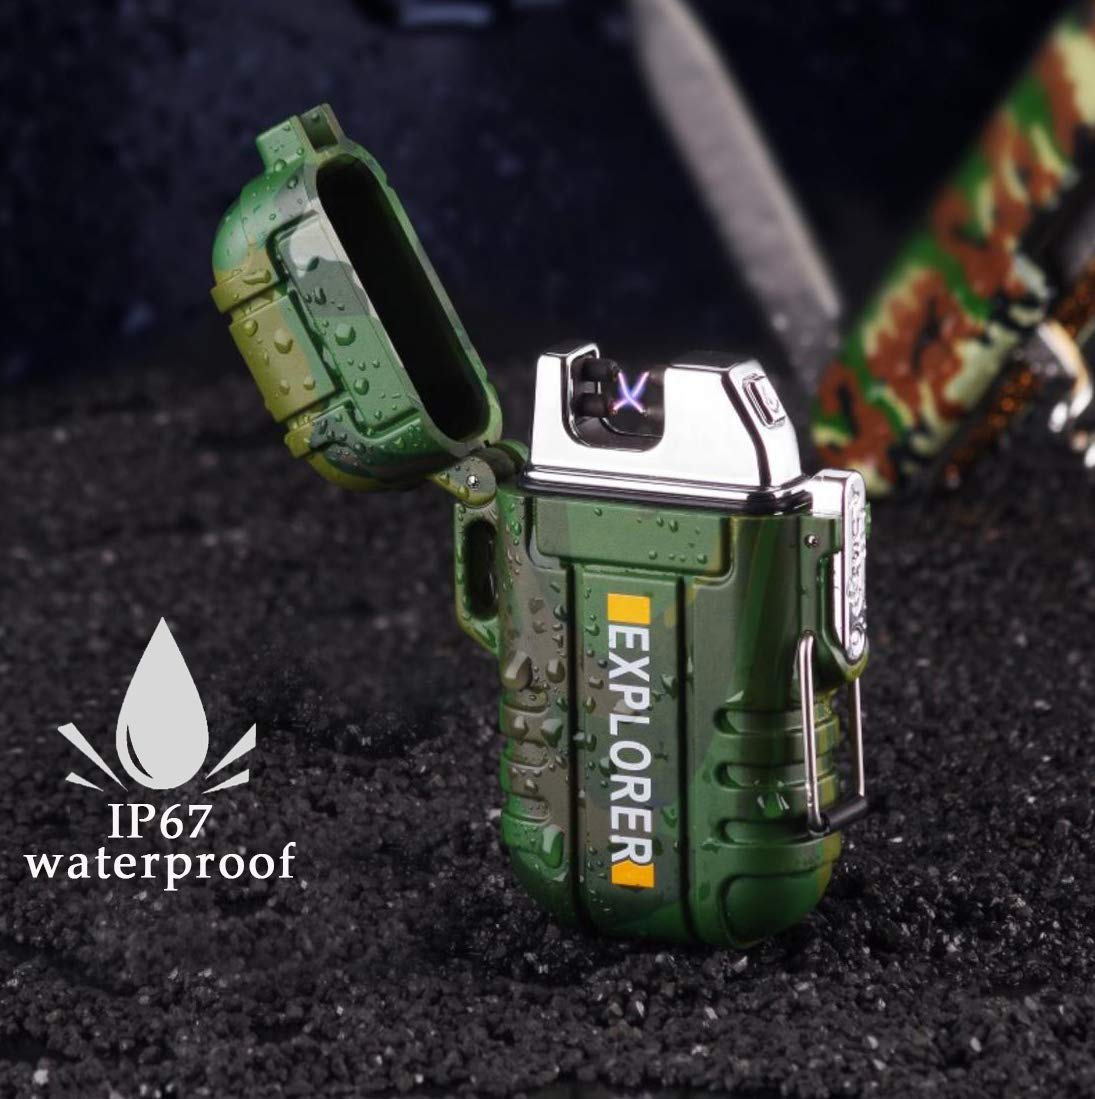 phoenix outdoor Military Glass IP67 Waterproof Electronic USB Lighter, Plasma Lighter, USB Rechargeable Arc Lighter, Windproof Dual Arc Lighter Outdoor Sports Camping Hiking Survival